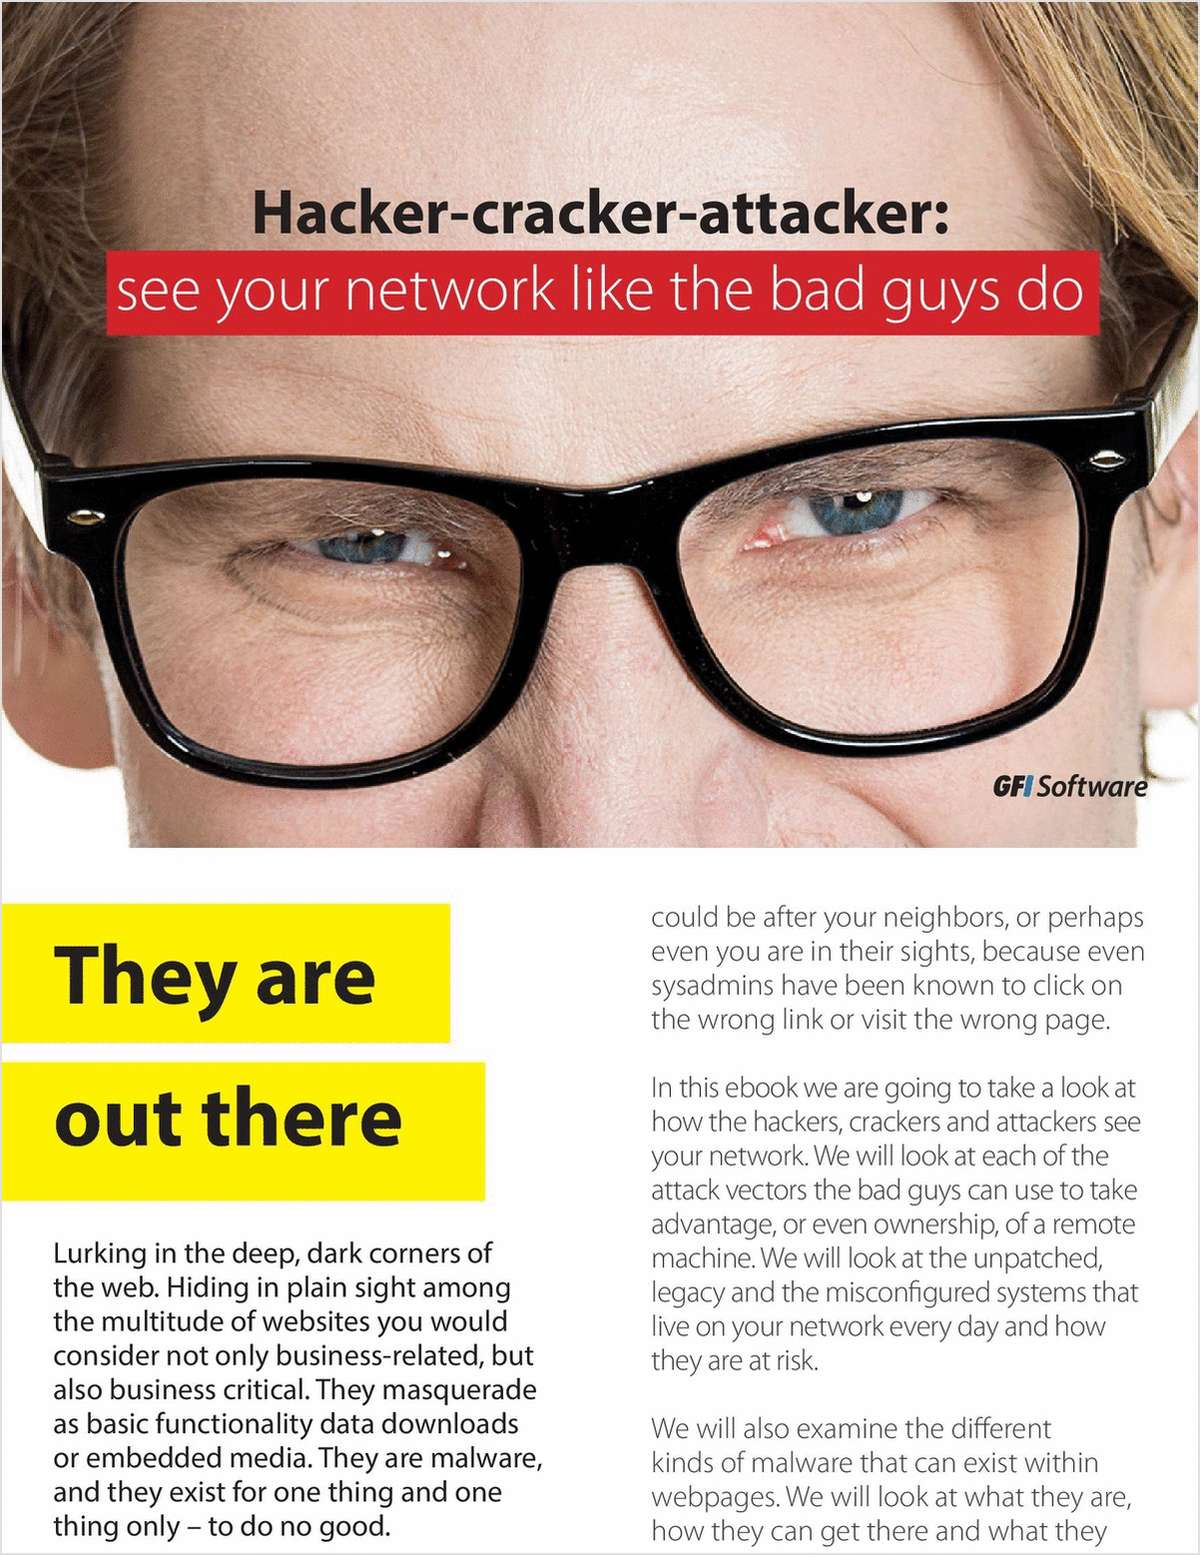 Hacker-Cracker-Attacker: See Your Network Like the Bad Guys Do